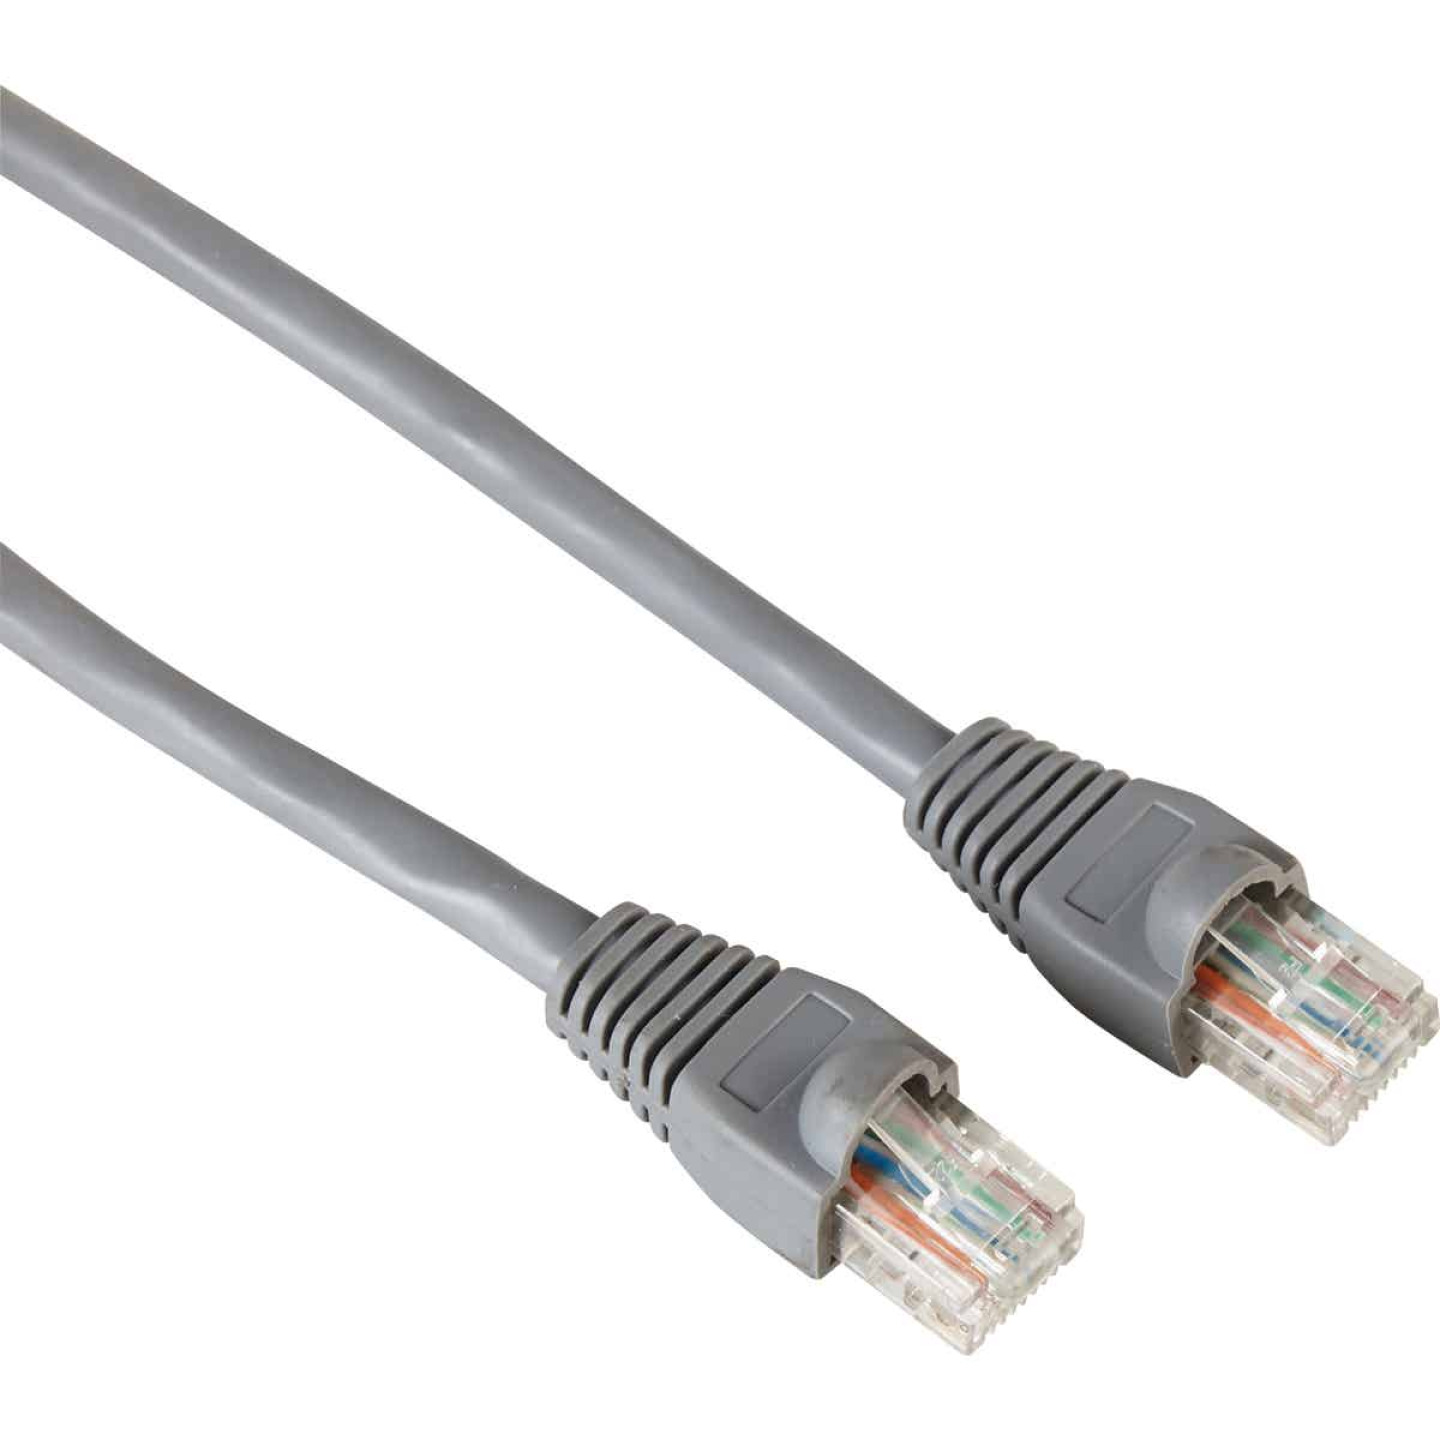 RCA 3 Ft. CAT-6 Gray Network Cable Image 1